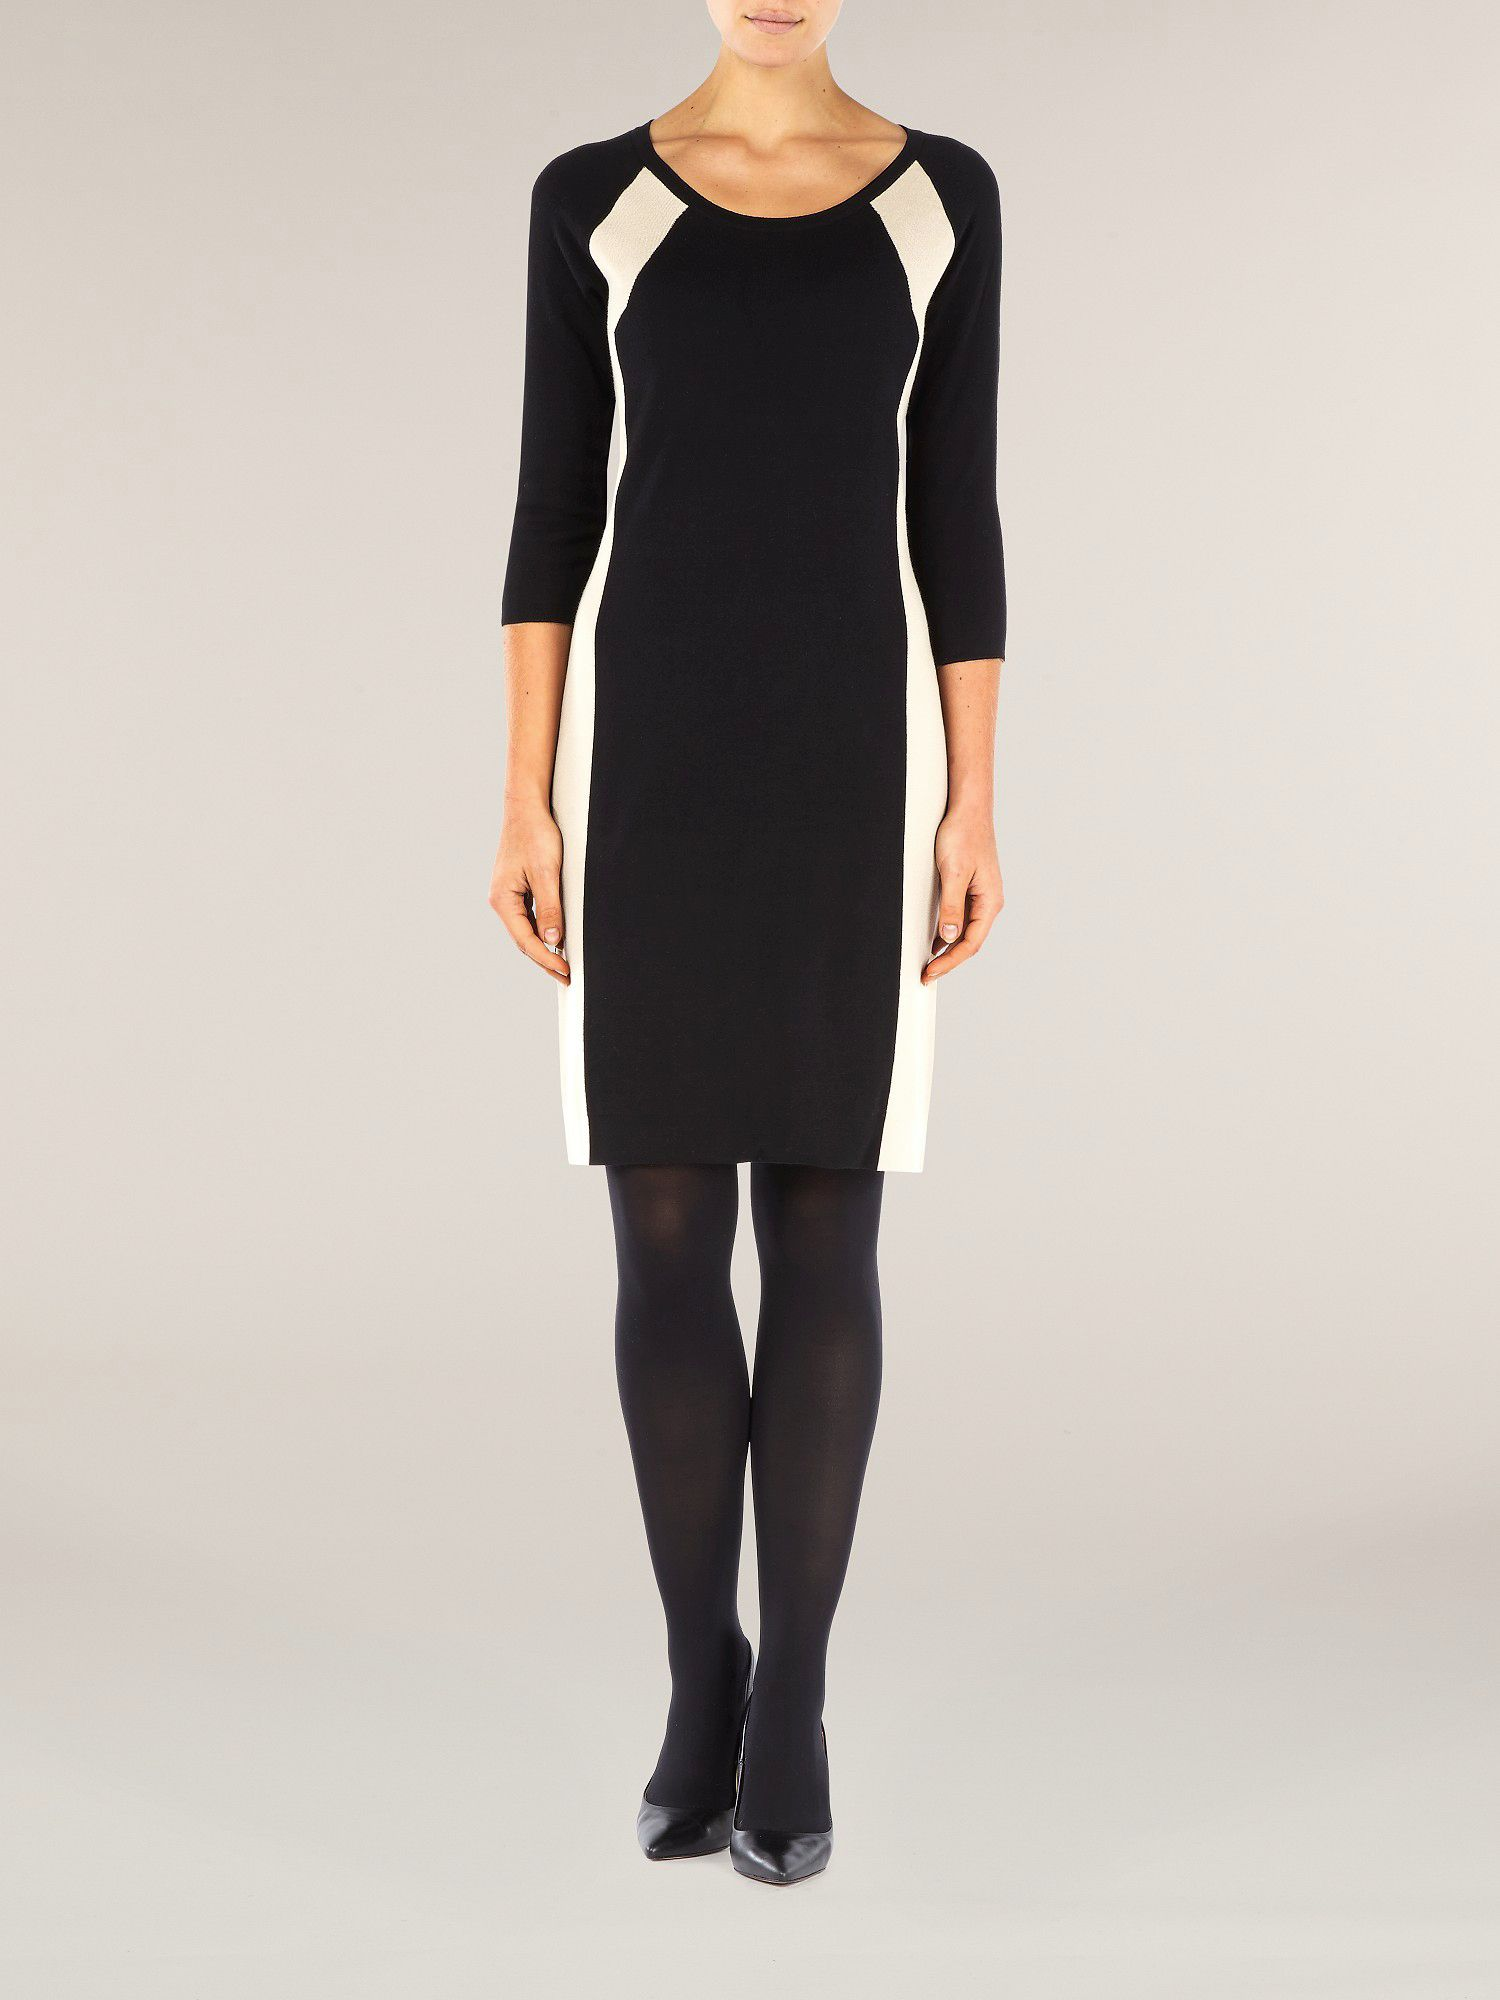 Panelled knitwear colour block dress